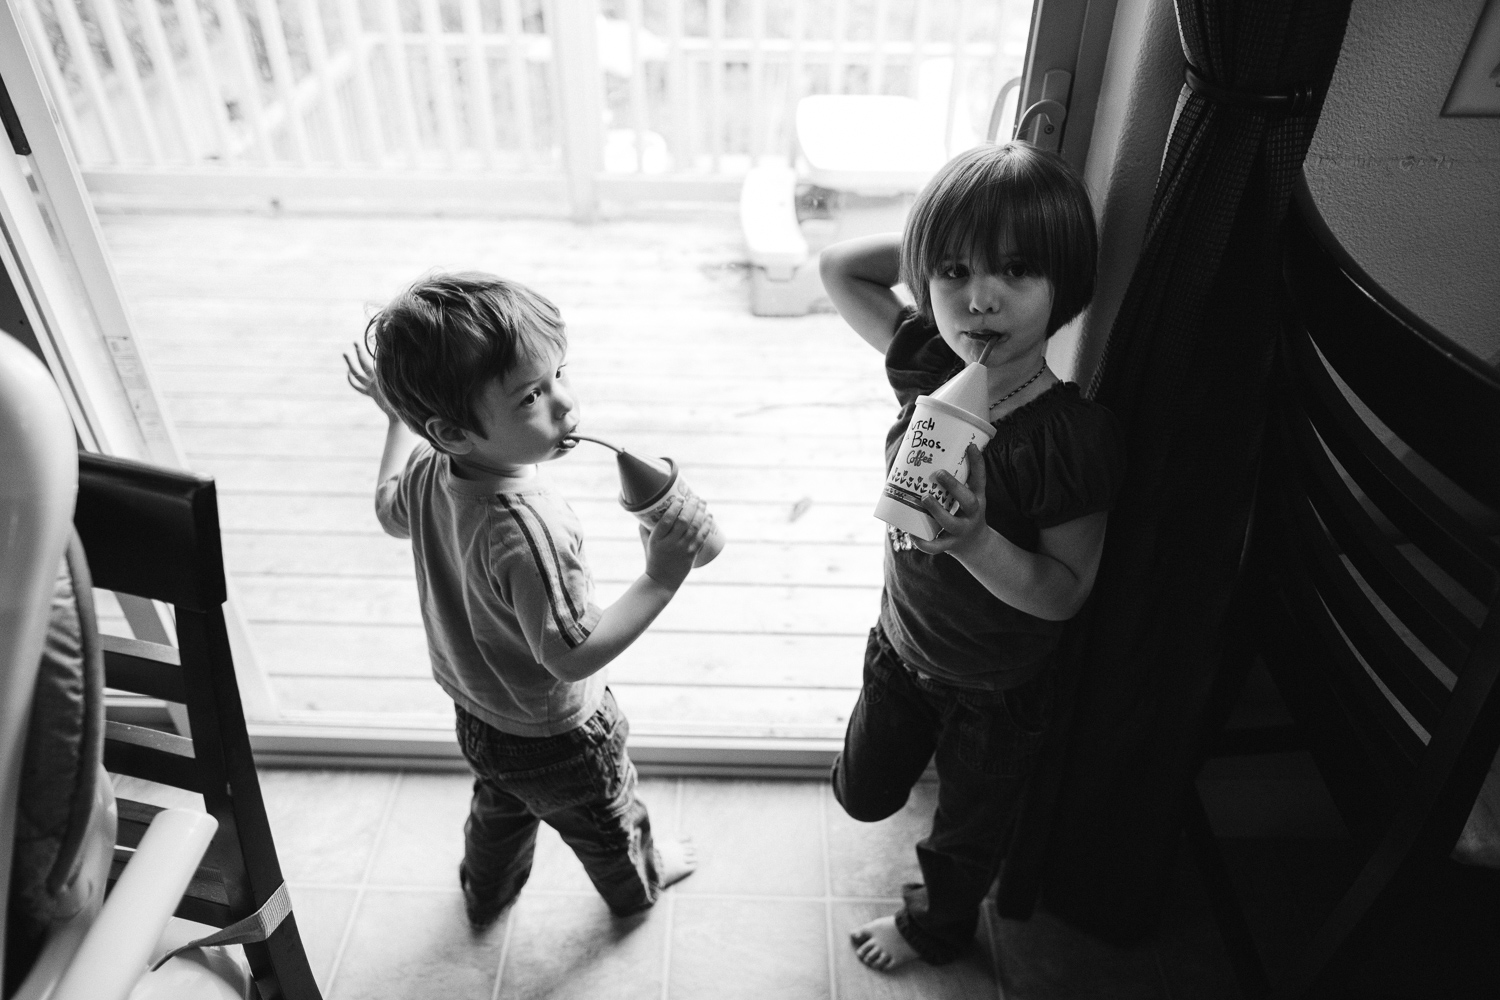 brother and sister drinking hot chocolate